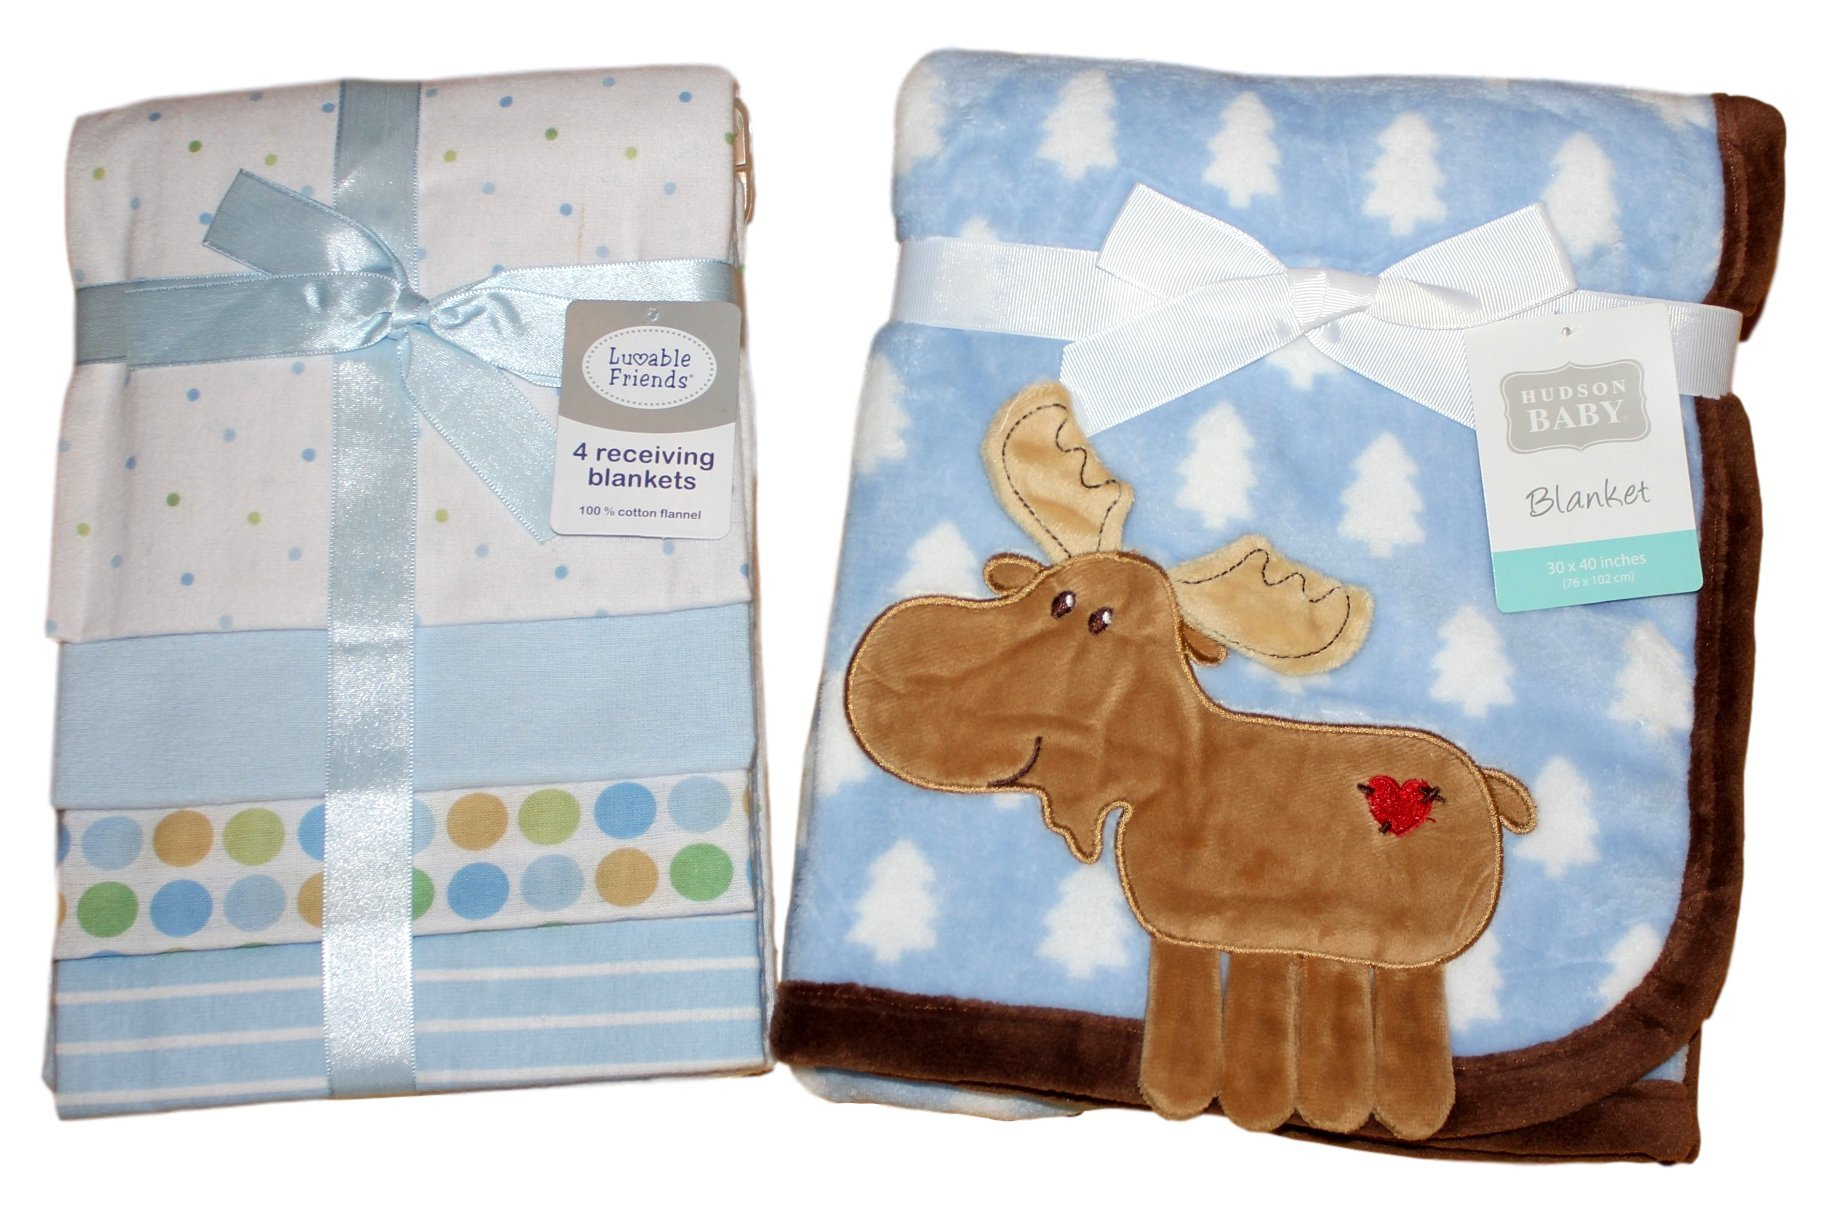 Hudson Baby Coral Fleece 3D Moose Blanket, Blue with Luvable Friends Flannel Receiving Blankets, Blue, 4 Count - Perfect Bundle for a